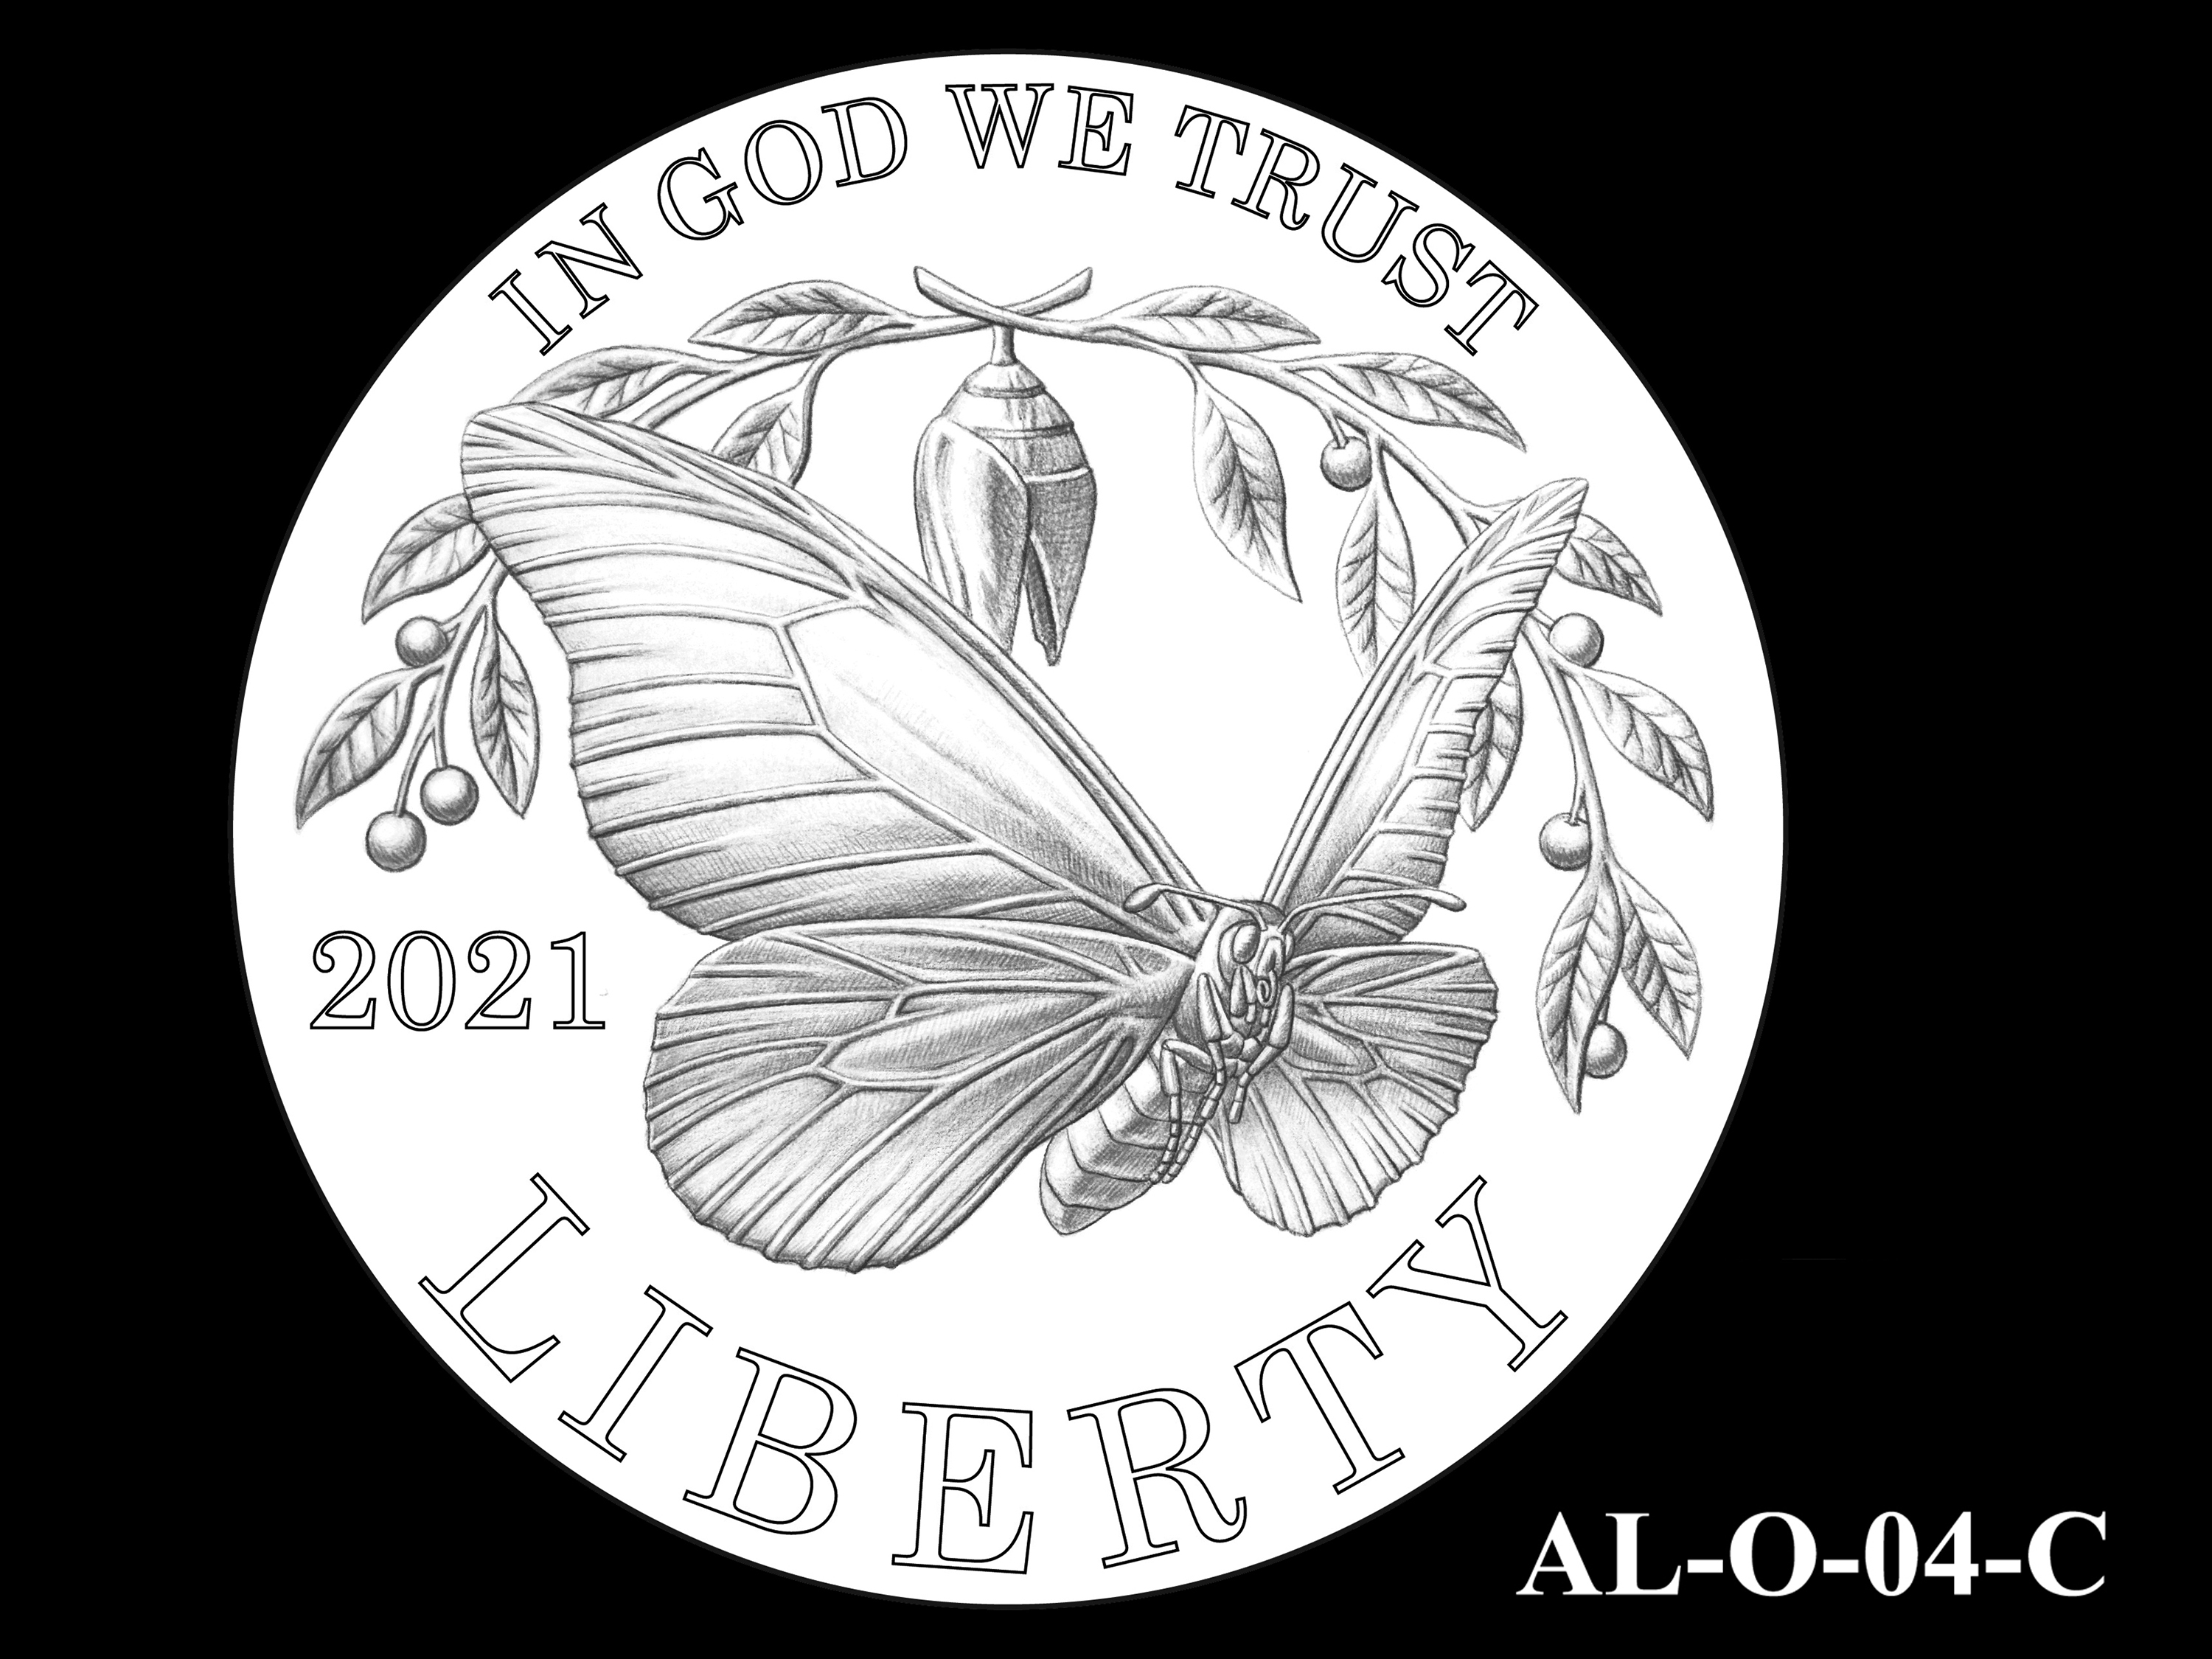 AL-O-04-C -- 2021 American Liberty Gold Coin and Silver Medal Program - Obverse